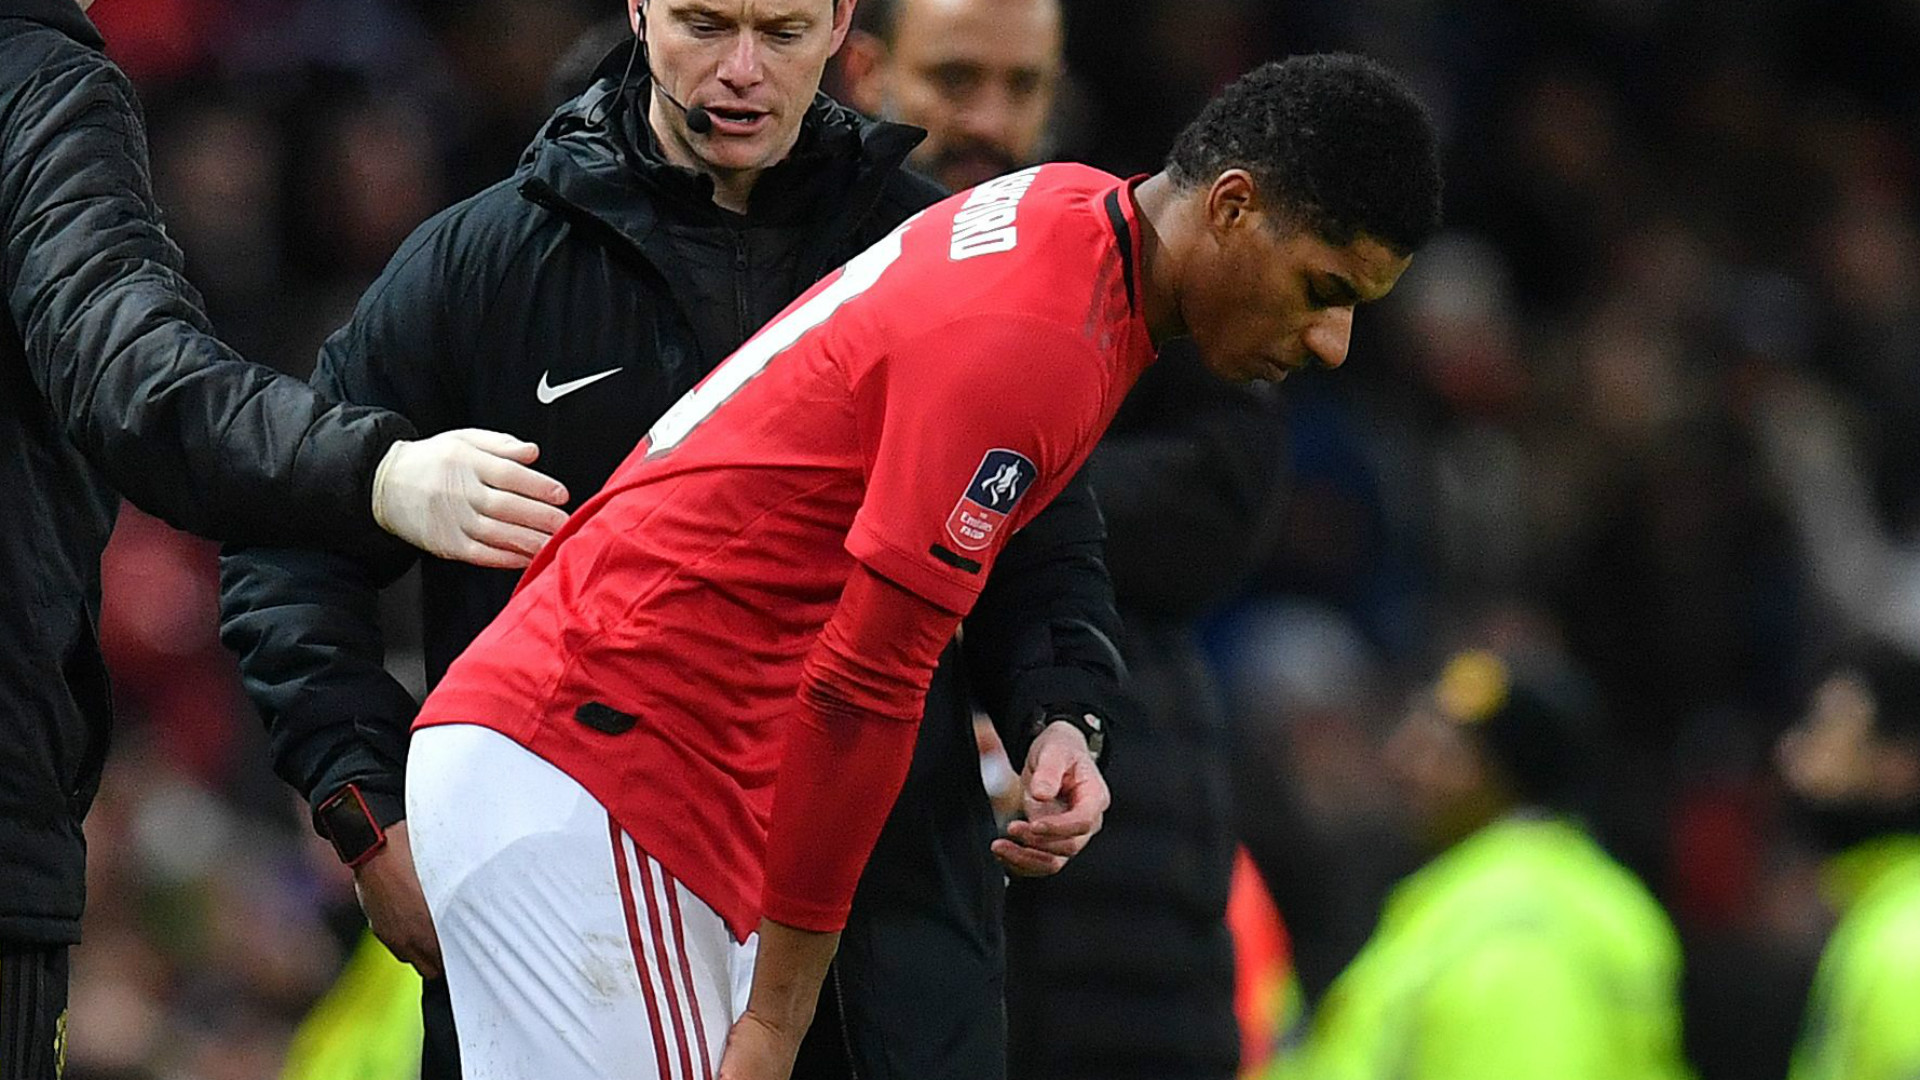 Don T Blame Solskjaer For Rashford S Injury It S A Sign Of Wider Incompetence At Man Utd Goal Com